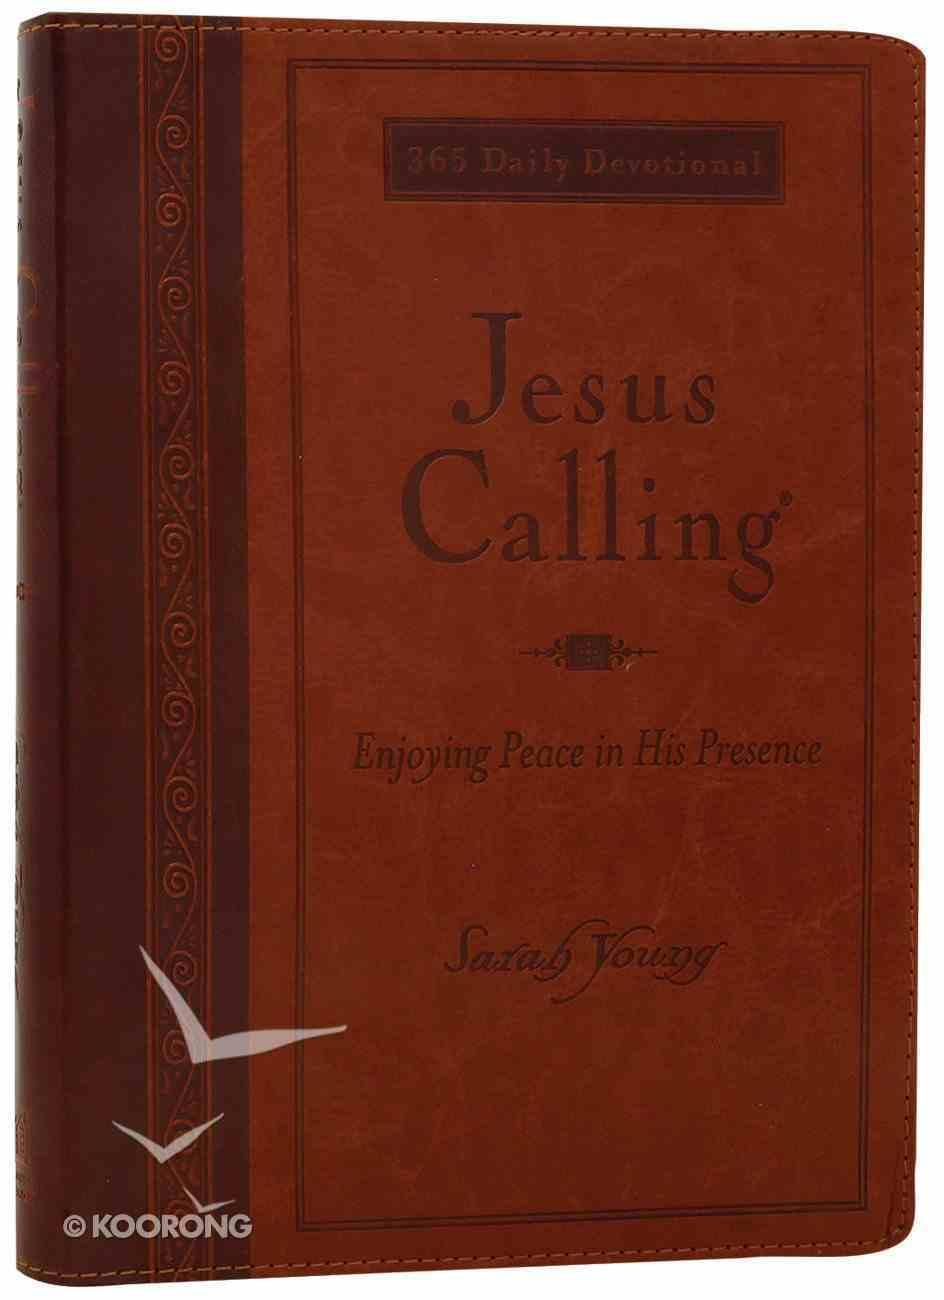 Jesus Calling Large Deluxe Edition Imitation Leather